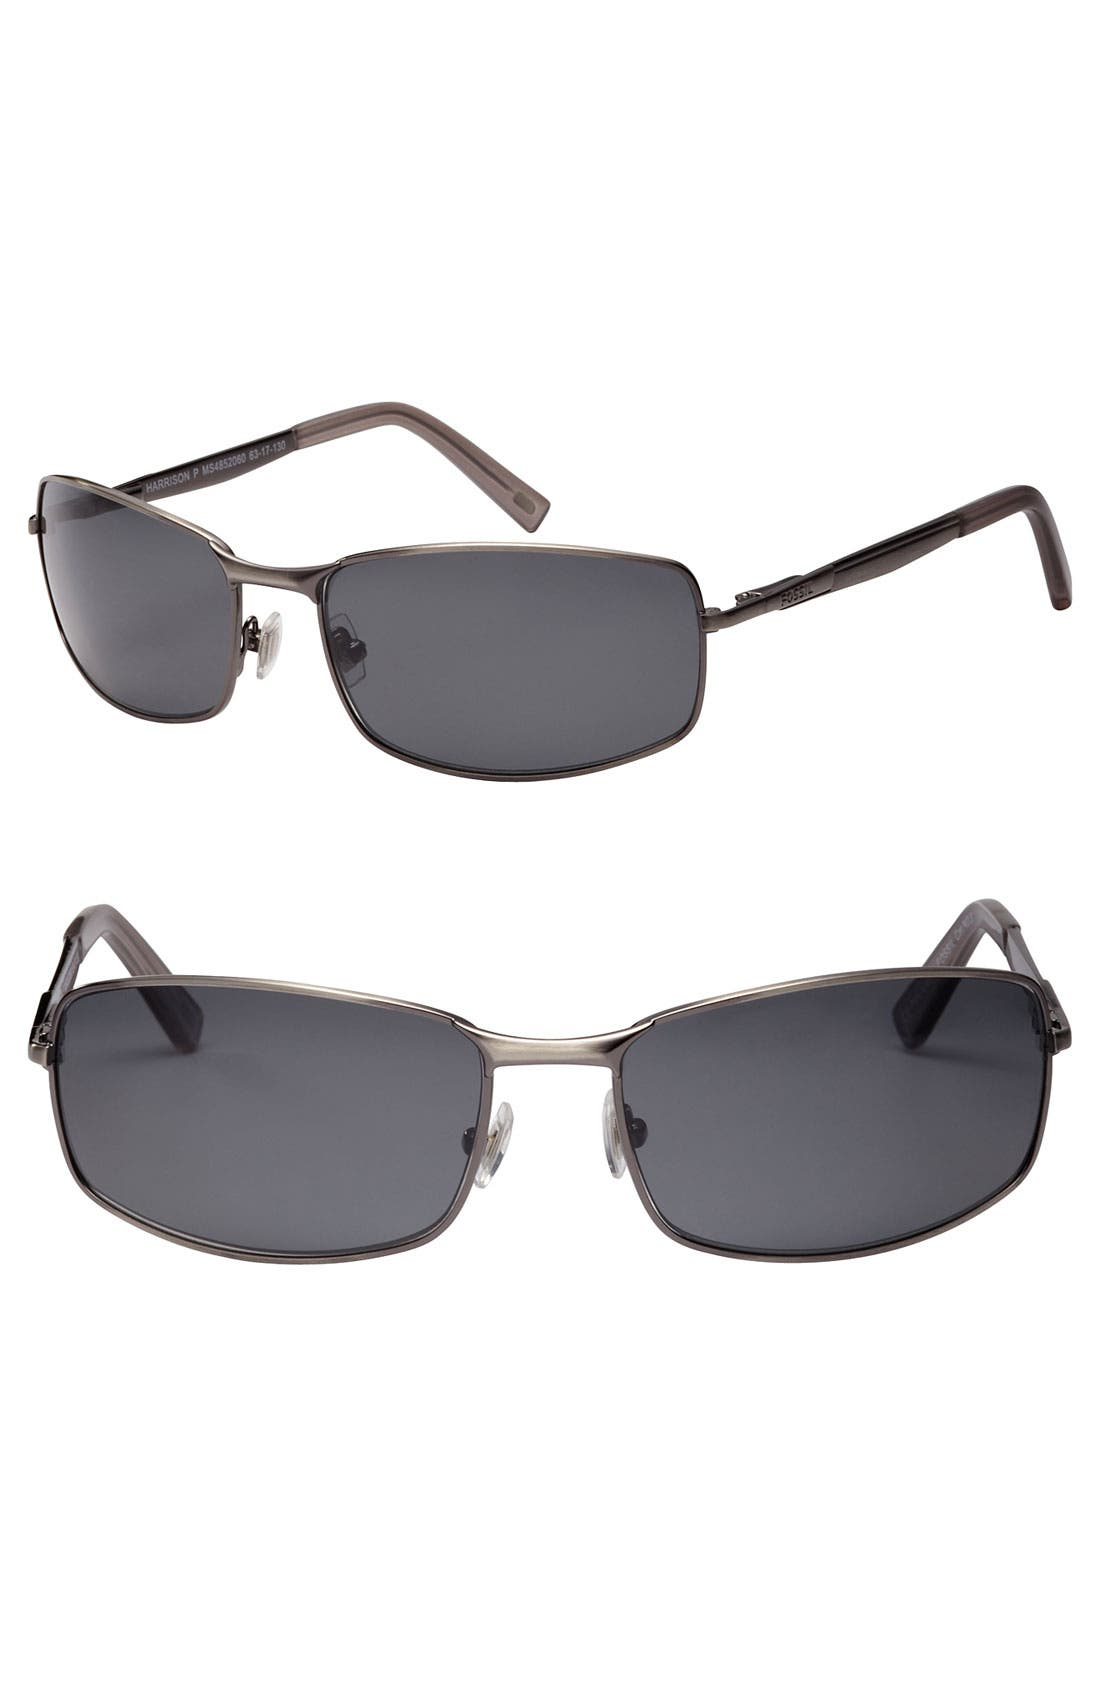 Alternate Image 1 Selected - Fossil 'Harrison' Polarized Sunglasses